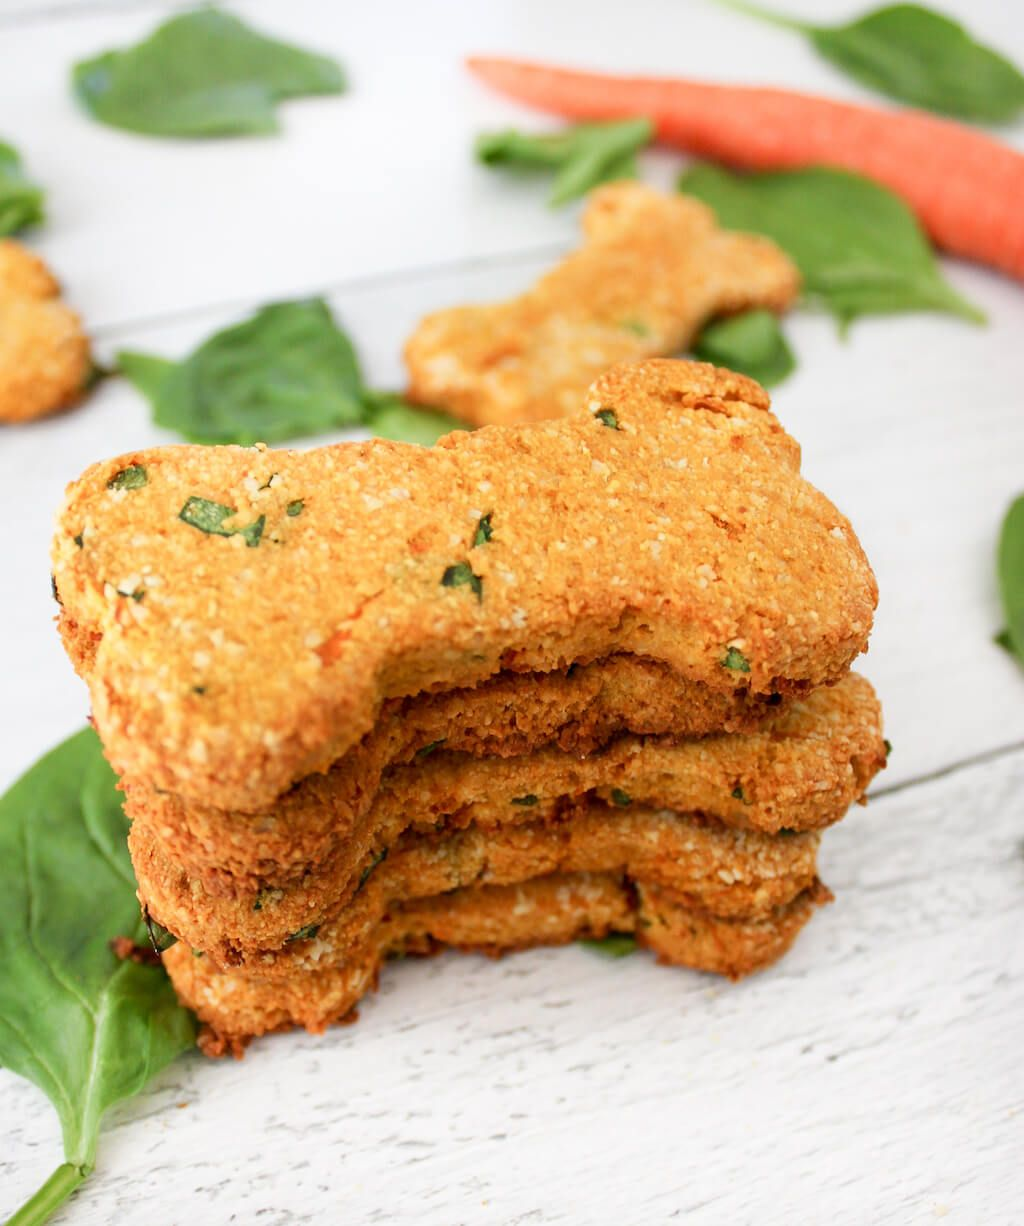 grain-free carrot and spinach dog treats